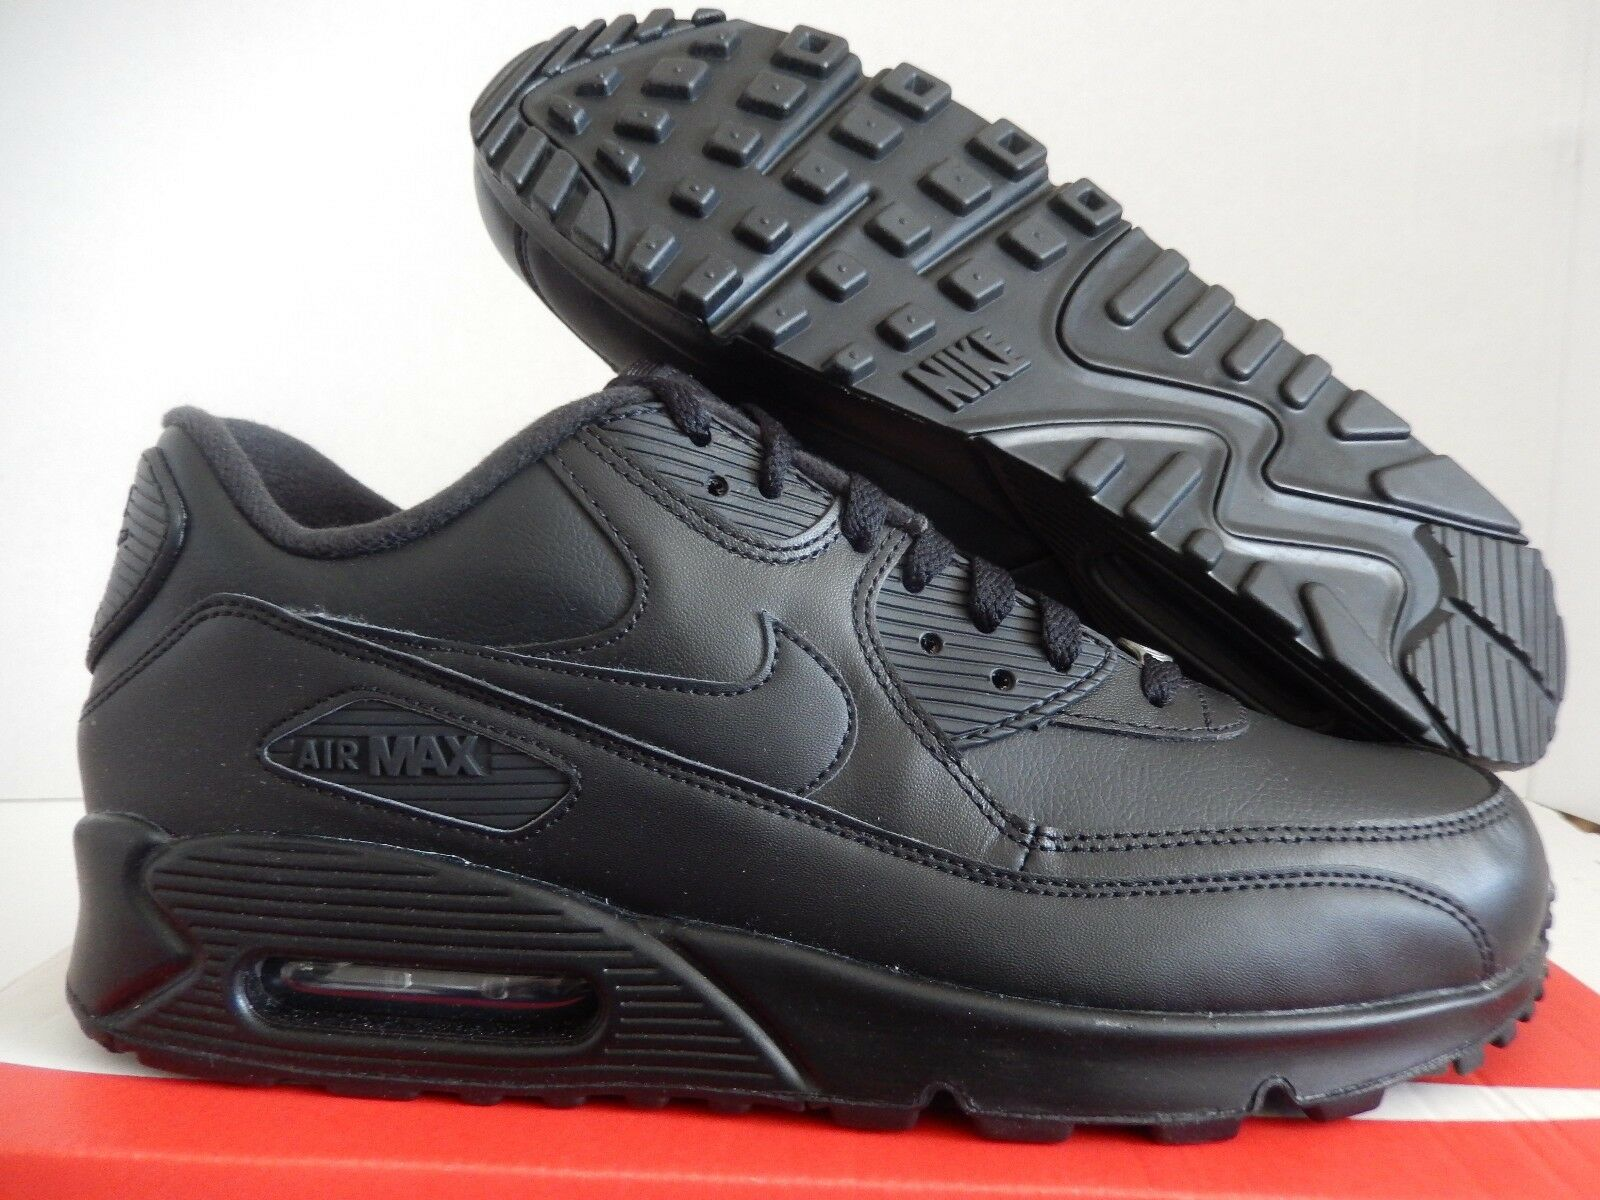 Nike Air Max 90 Mens Leather Size 12 Running Shoes Black SNEAKERS 302519 001